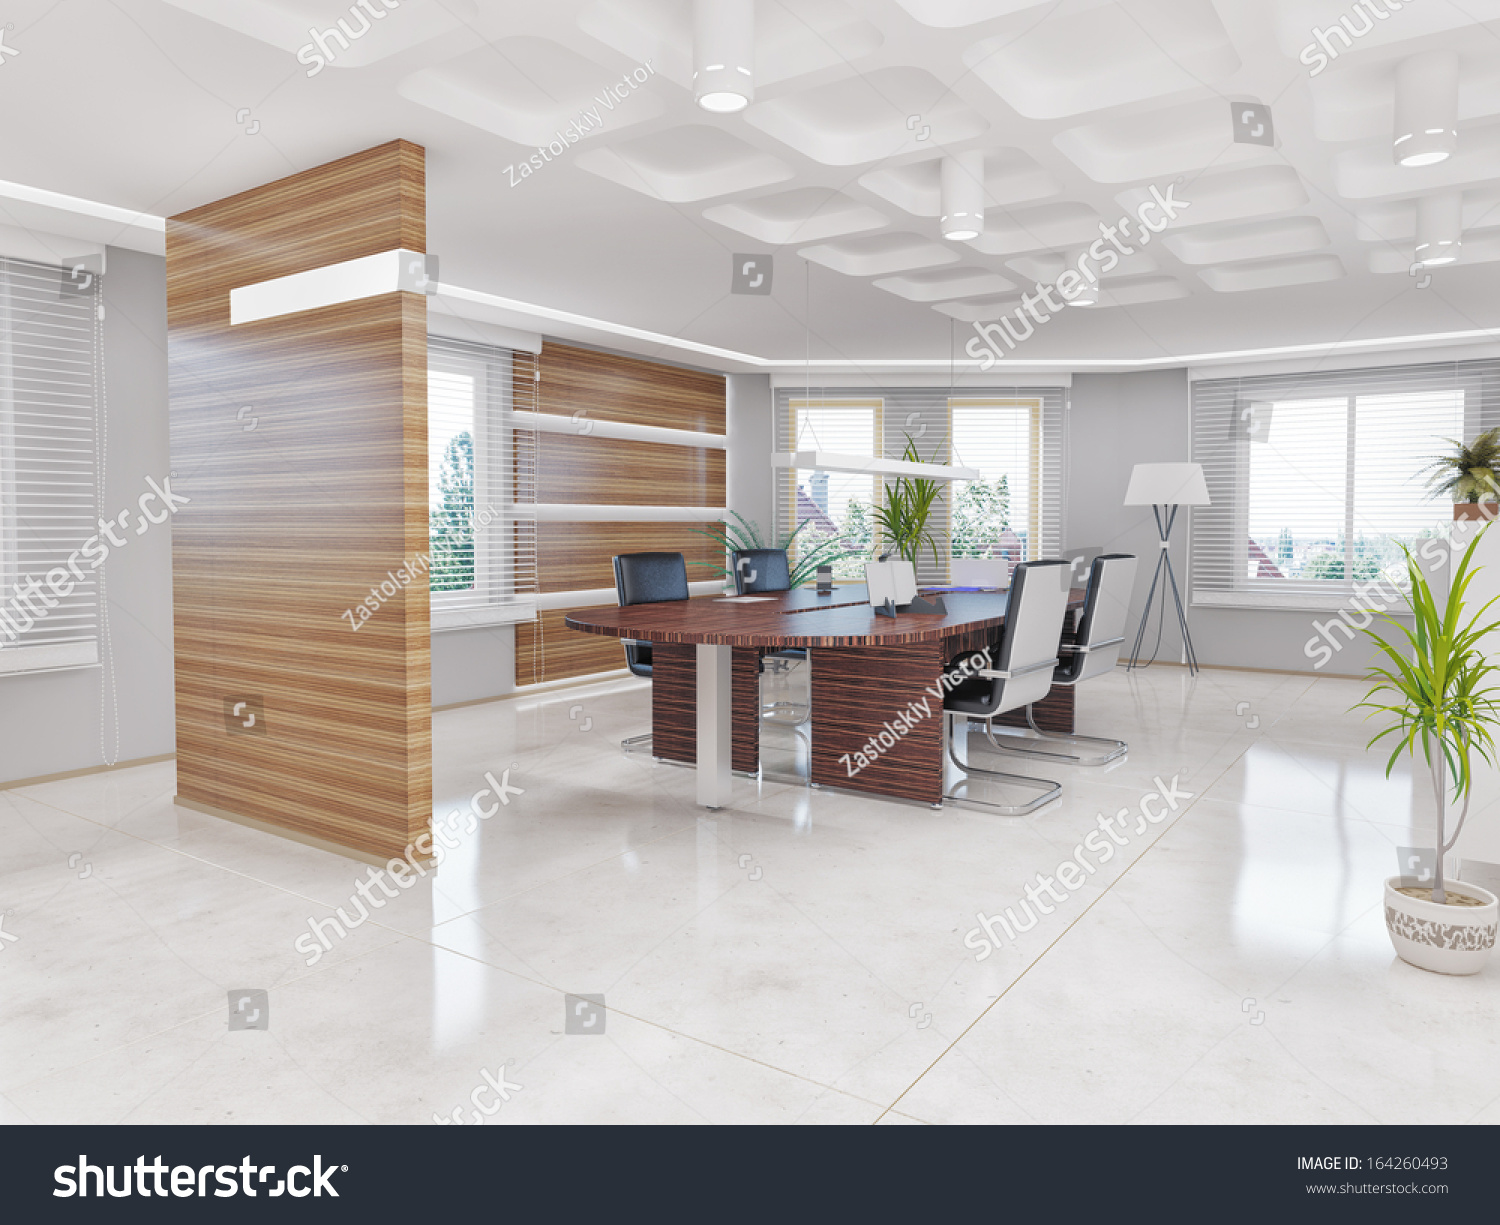 High Quality Modern Office Interior. Design Concept